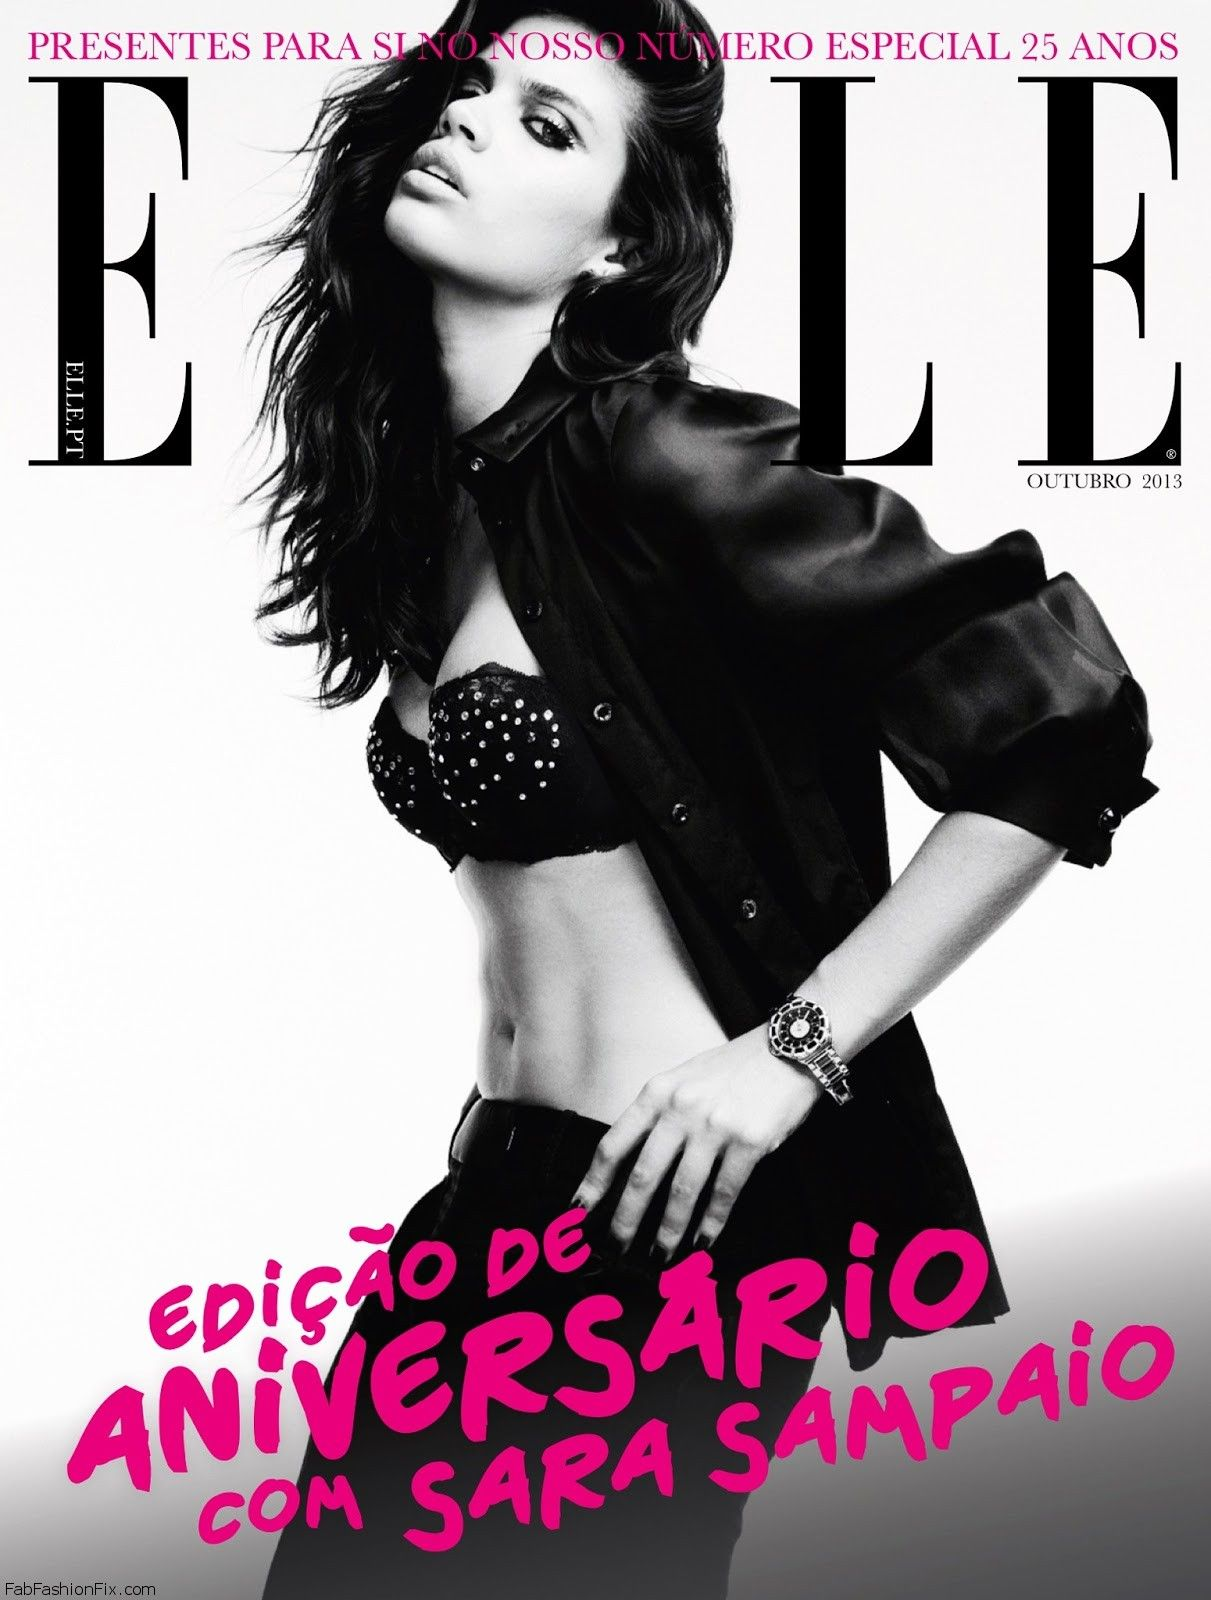 fashion_scans_remastered-sara_sampaio-elle_portugal-october_2013-scanned_by_vampirehorde-hq-21